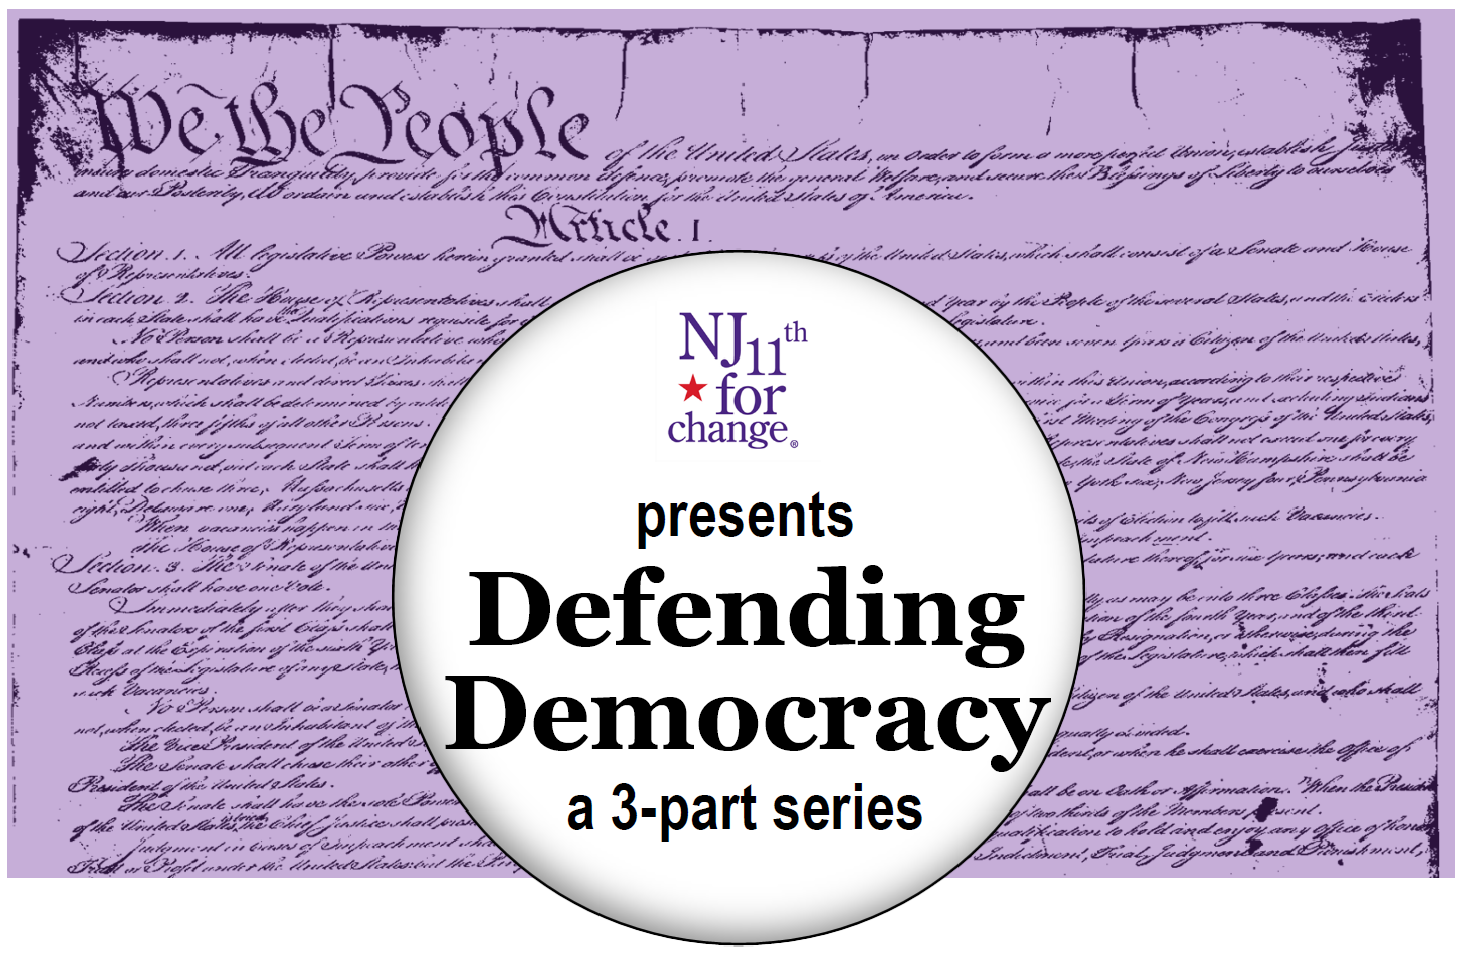 defendingdemocracy3partseries.PNG